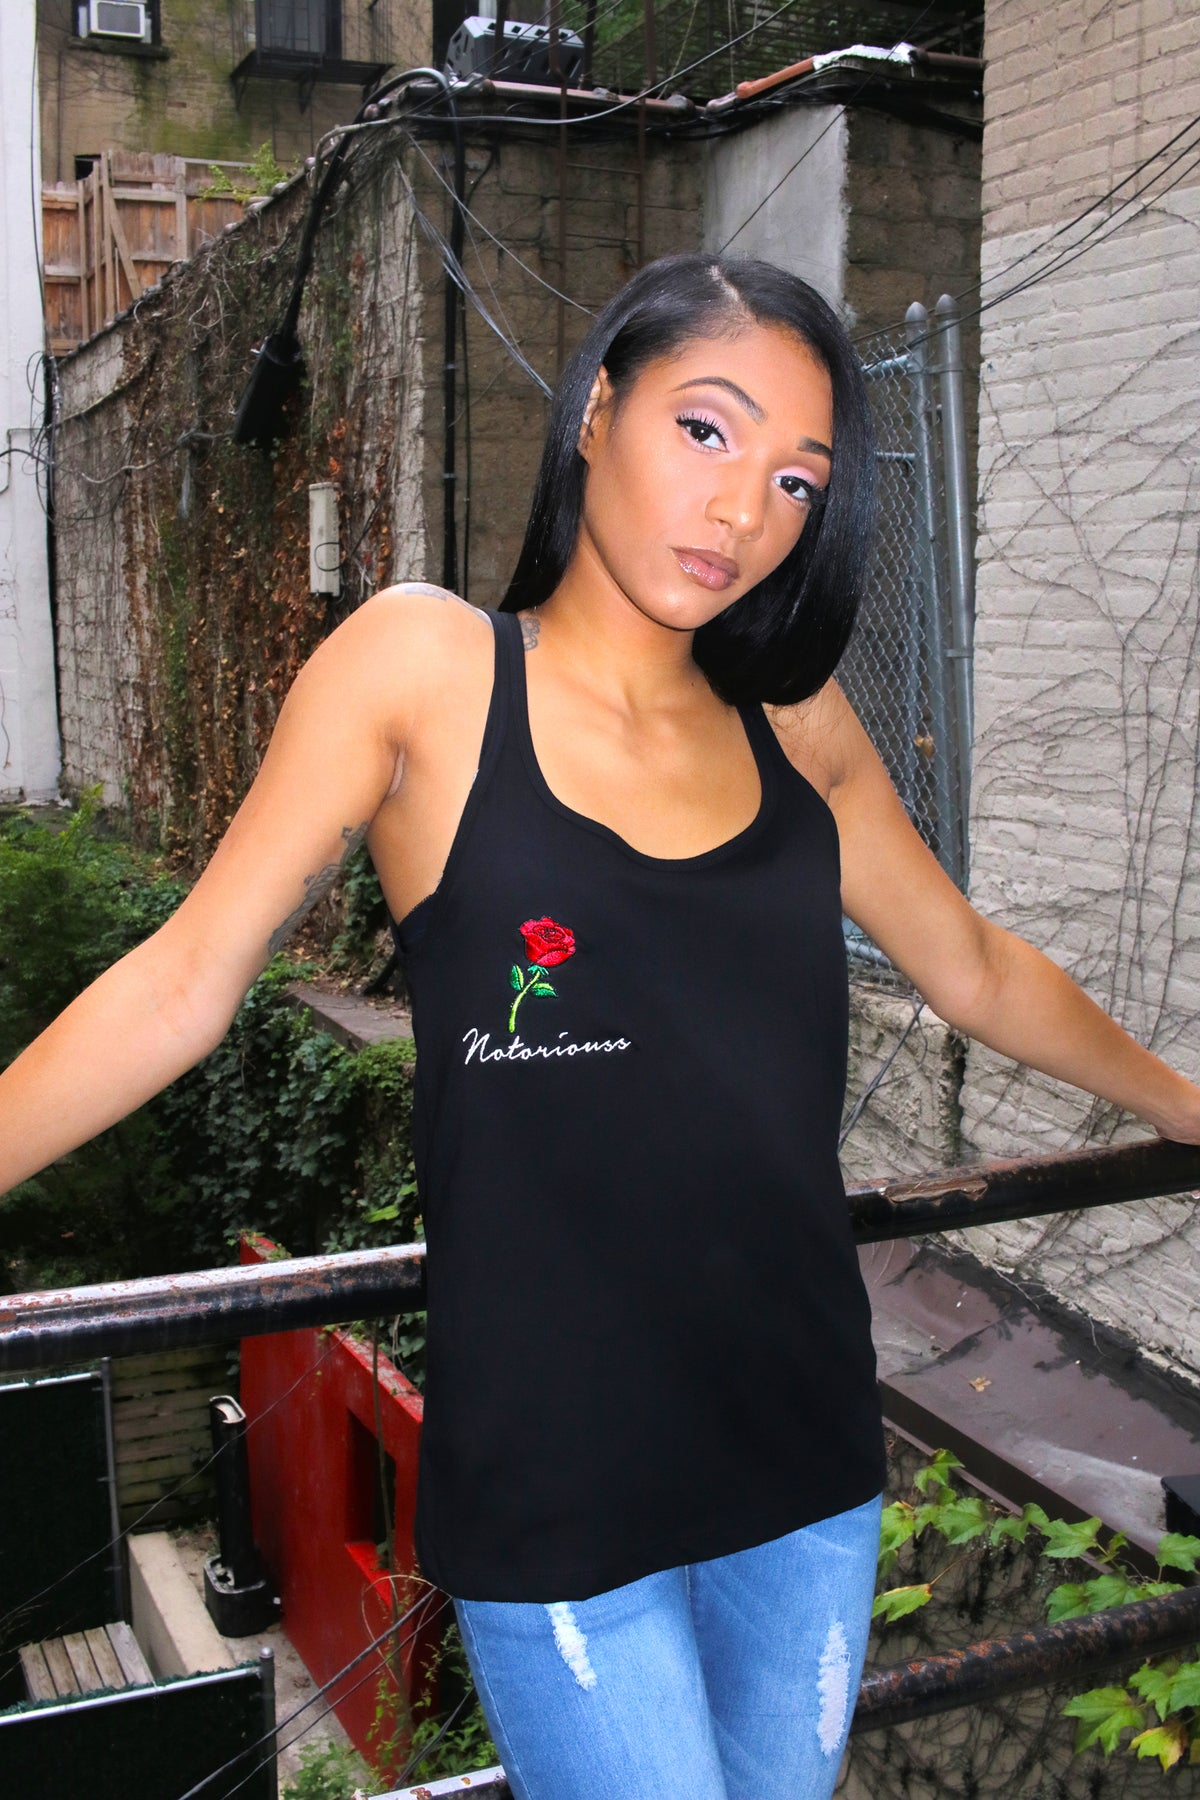 Rose Tank Top (Female)